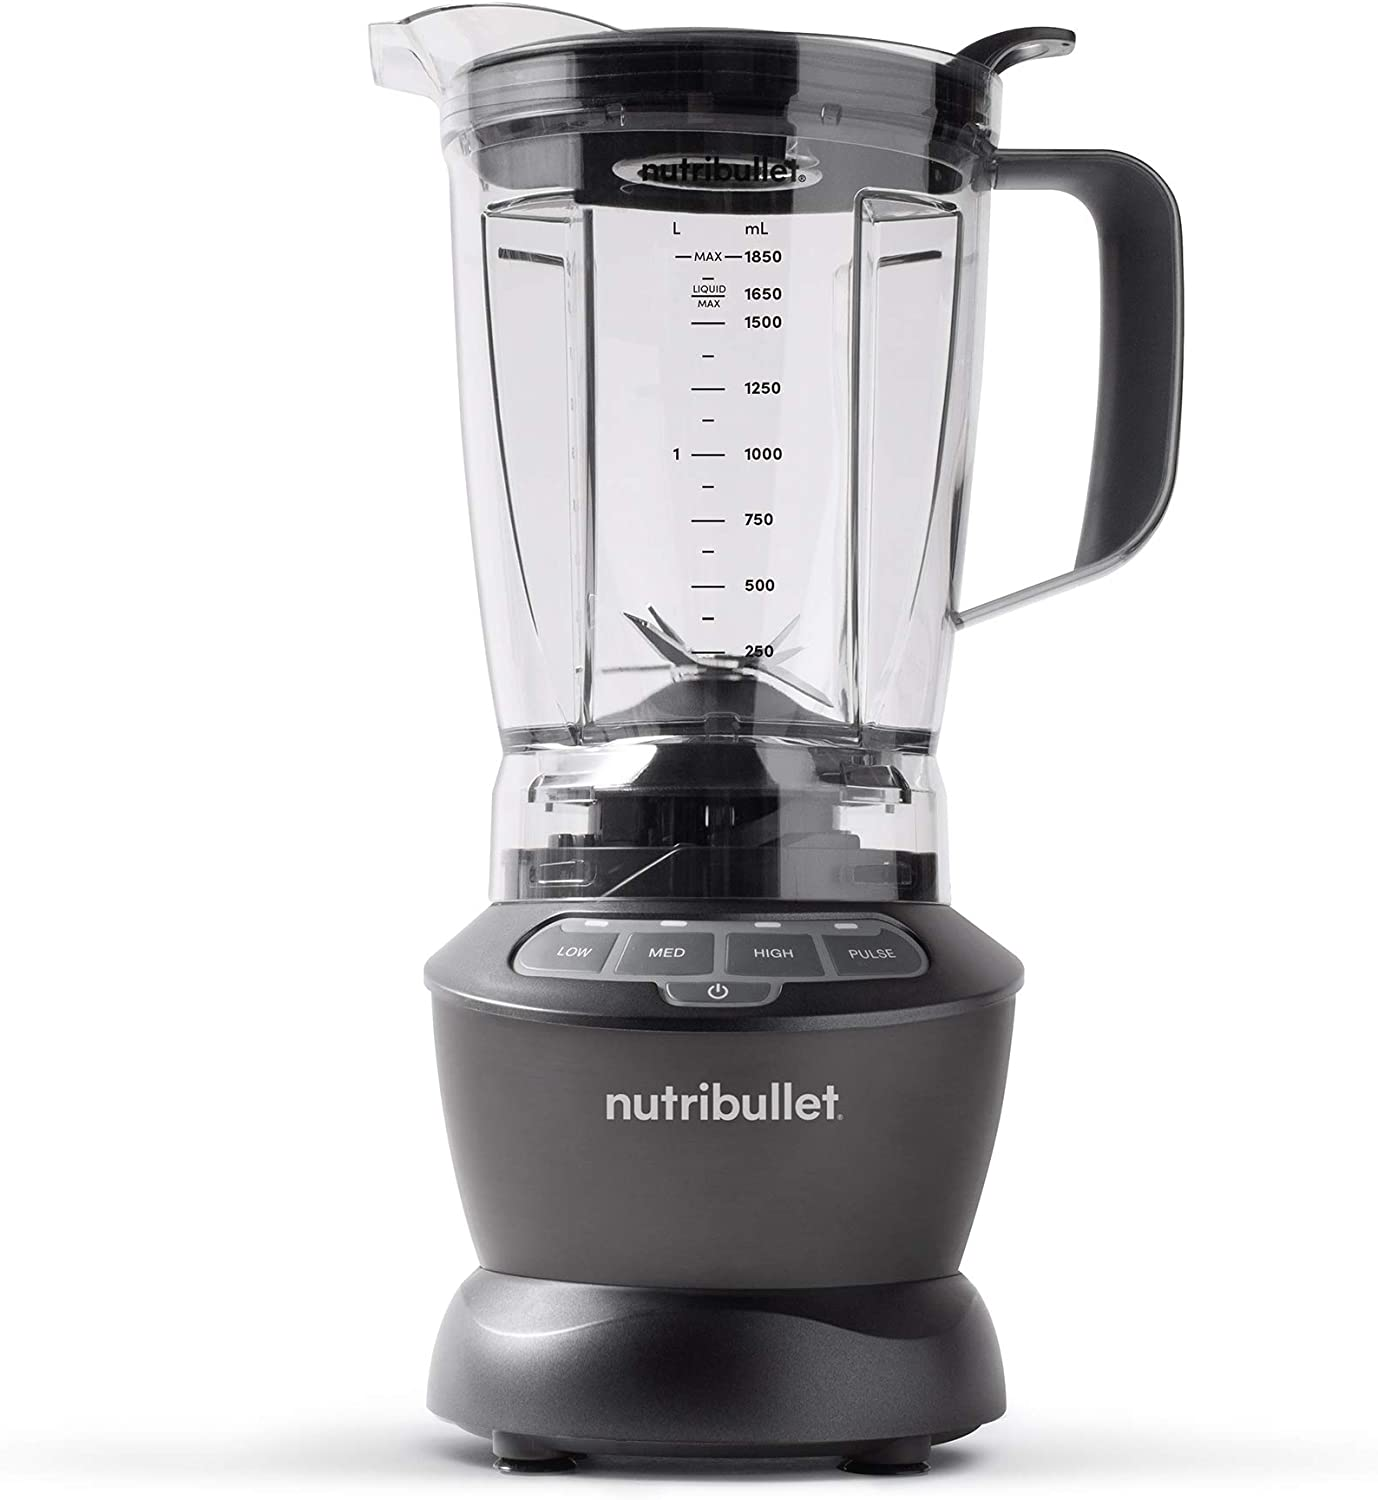 NutrieBullet Smoothie Blender 1200 Watts With Dark Gray Color Perfect For Smoothie Lovers